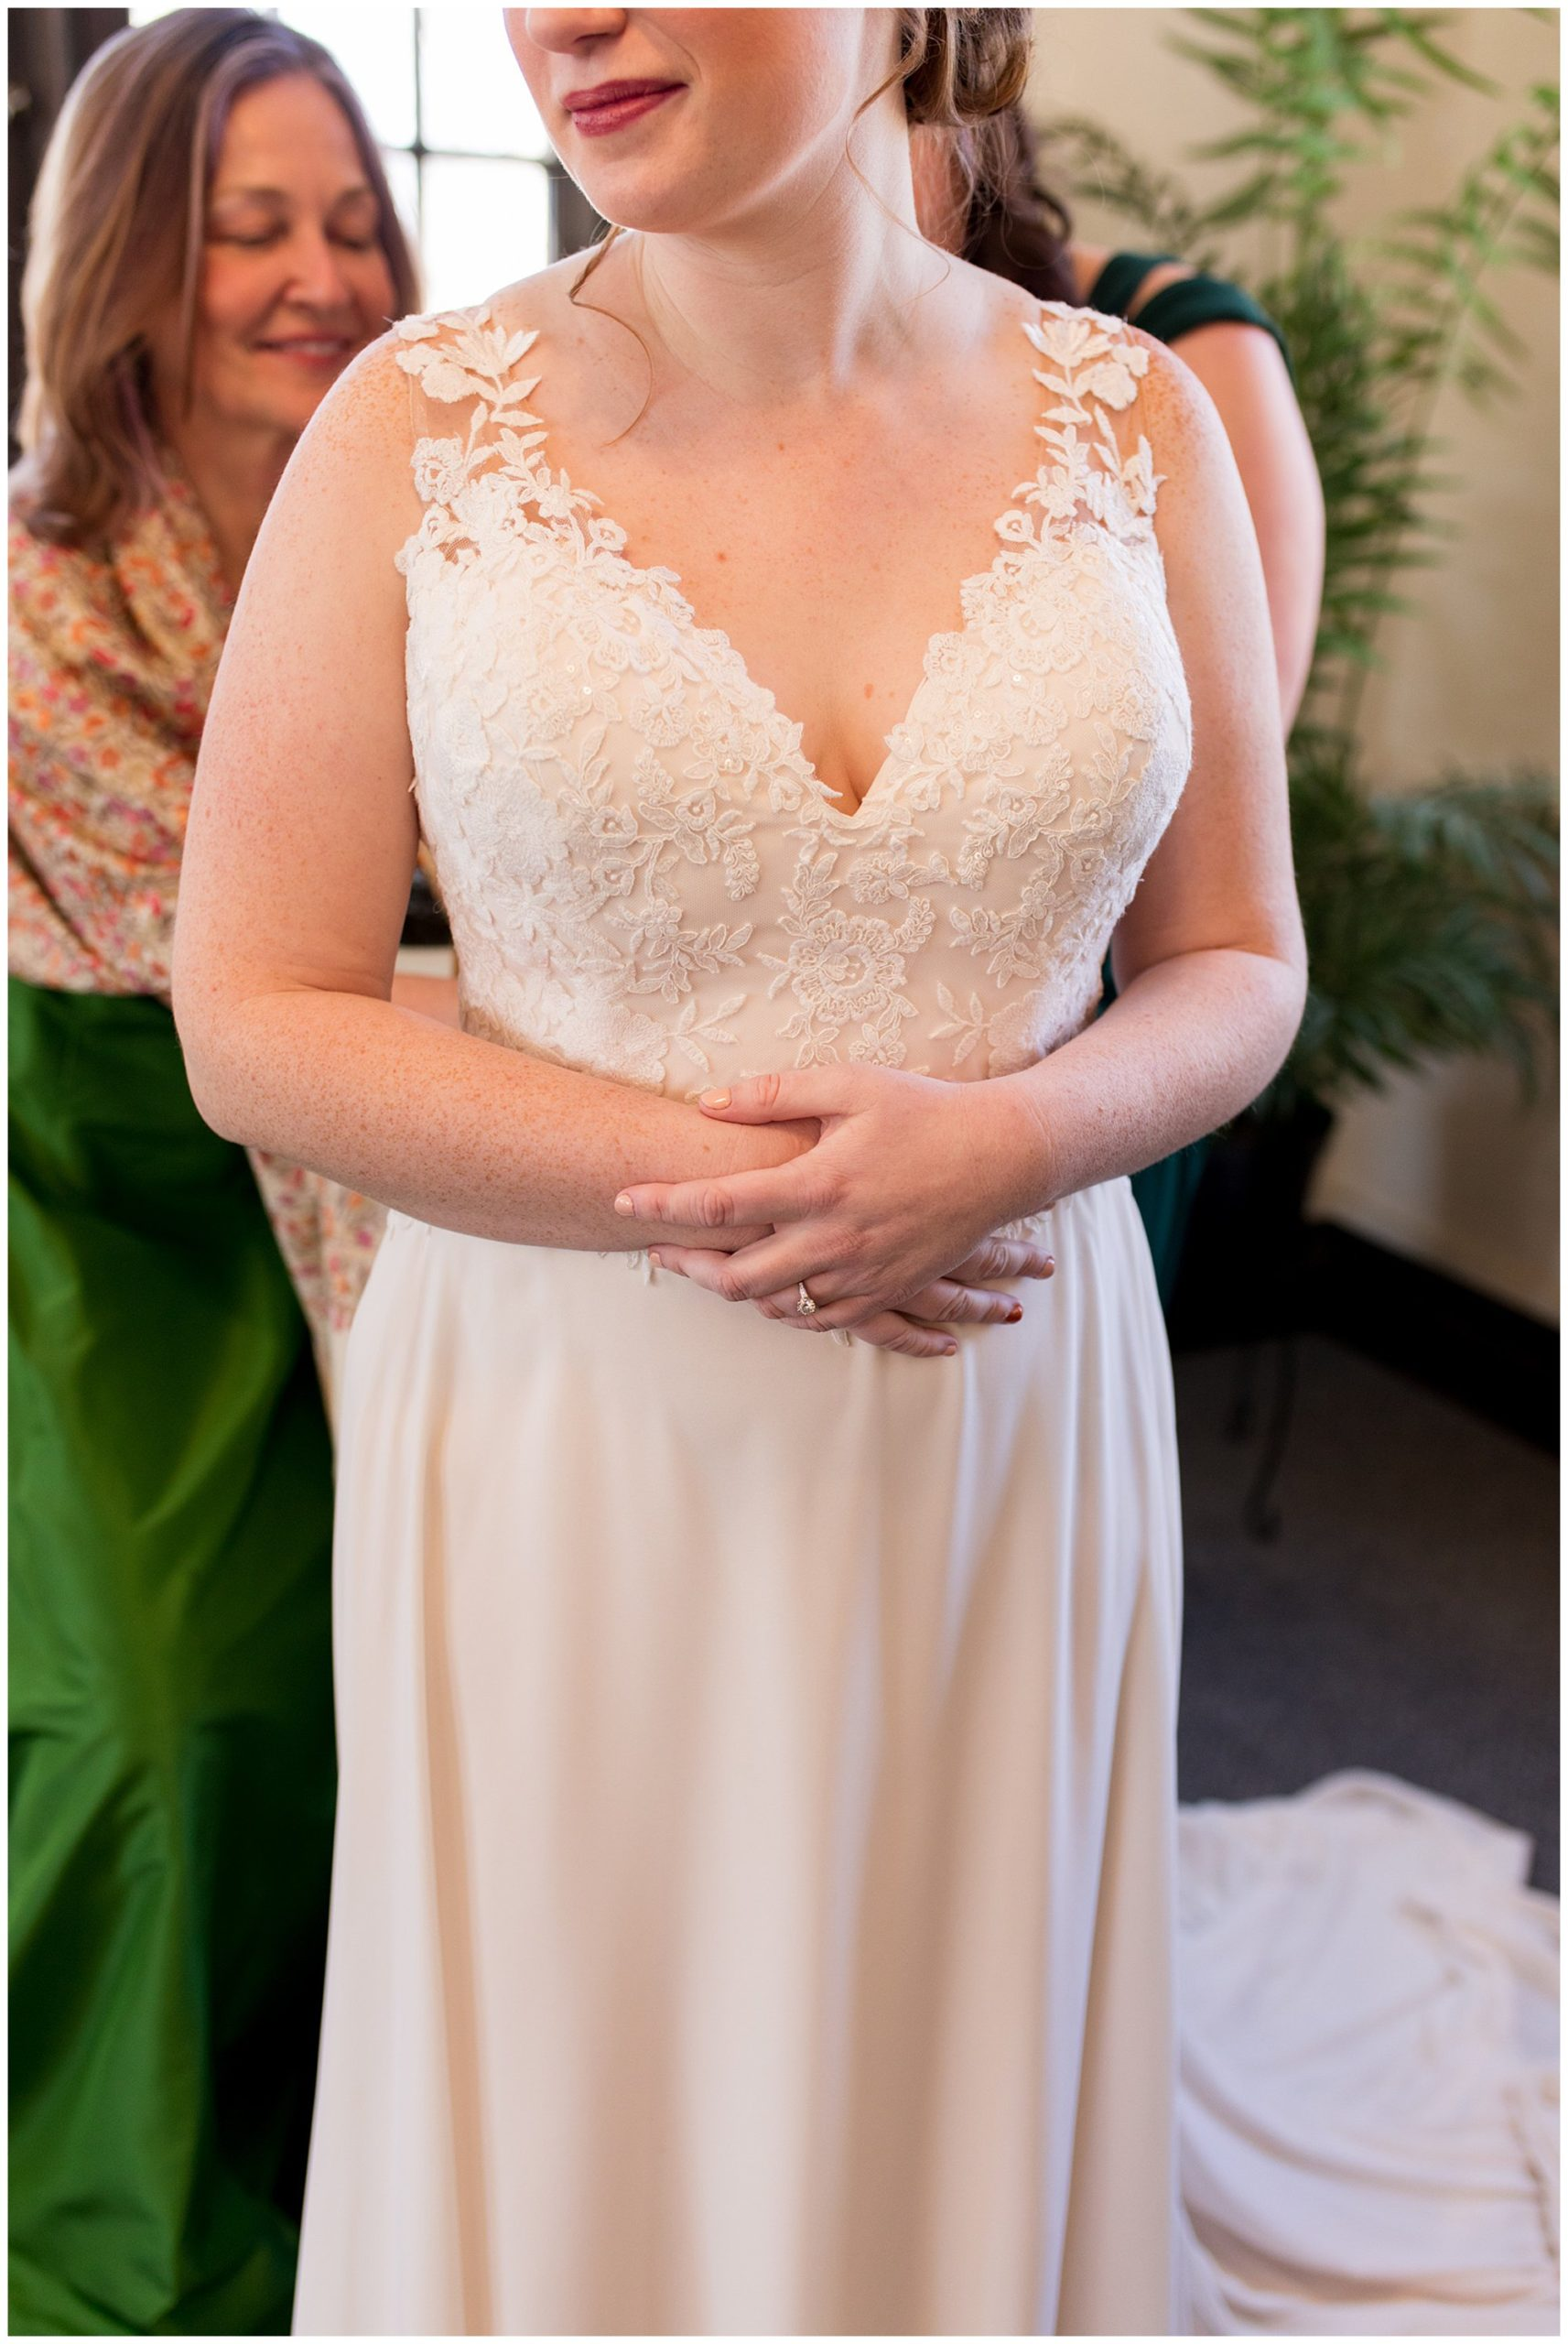 bride holding her hands while bridesmaids button her dress getting ready